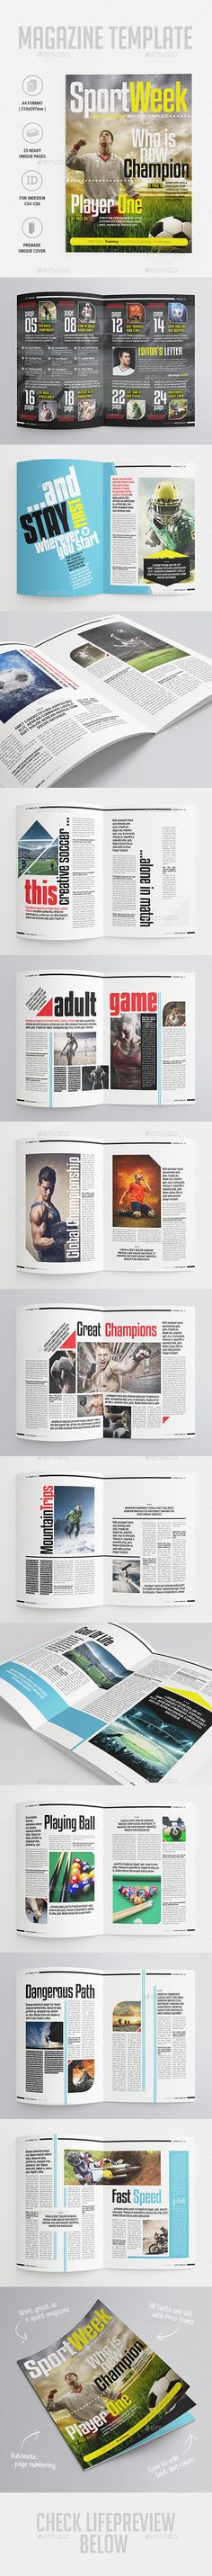 Sport Magazine — InDesign INDD #football #template • Available here → https://graphicriver.net/item/sport-magazine/10063768?ref=pxcr